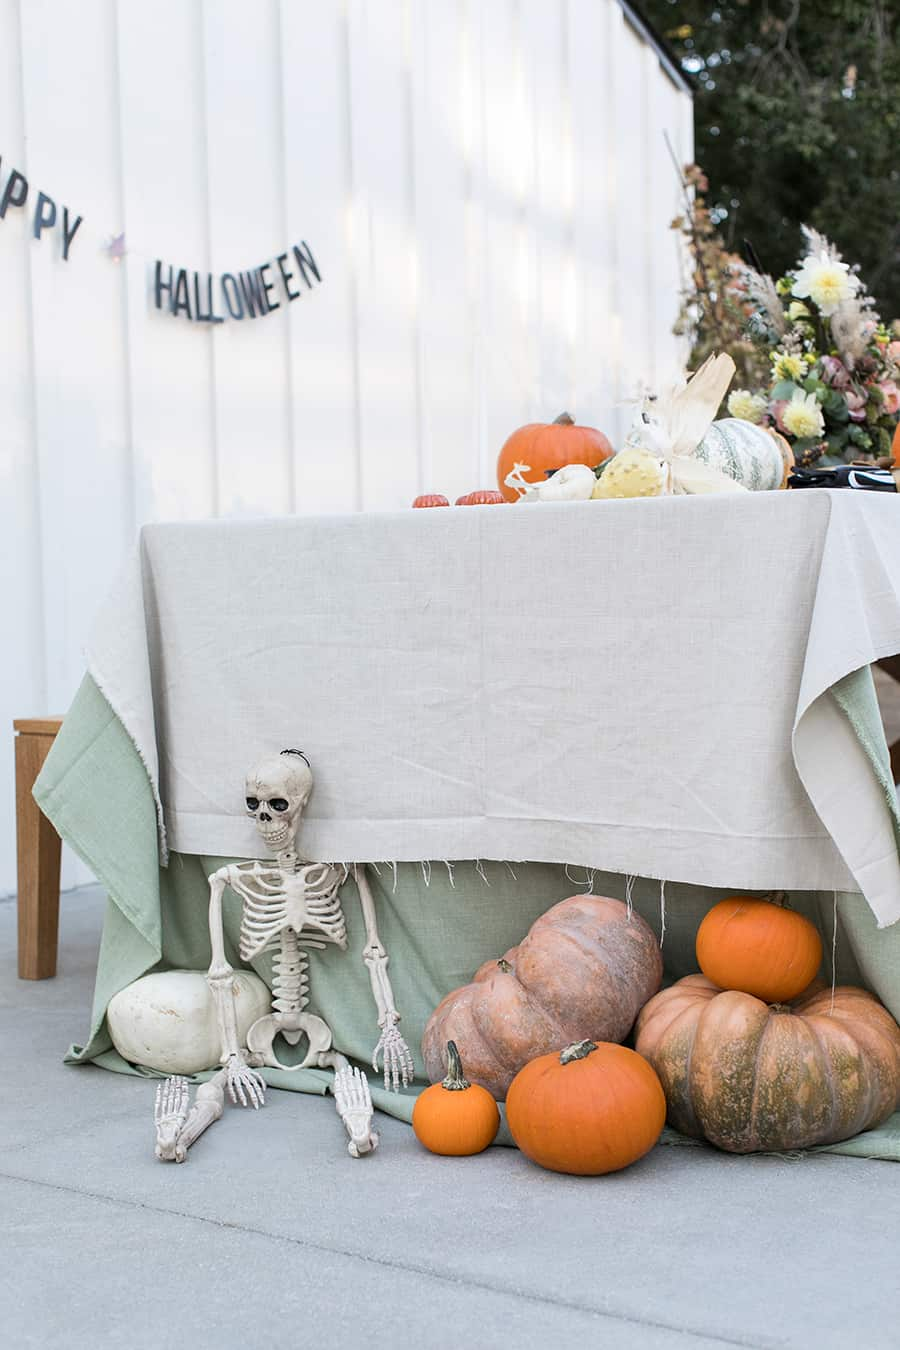 shot of table with pumpkins